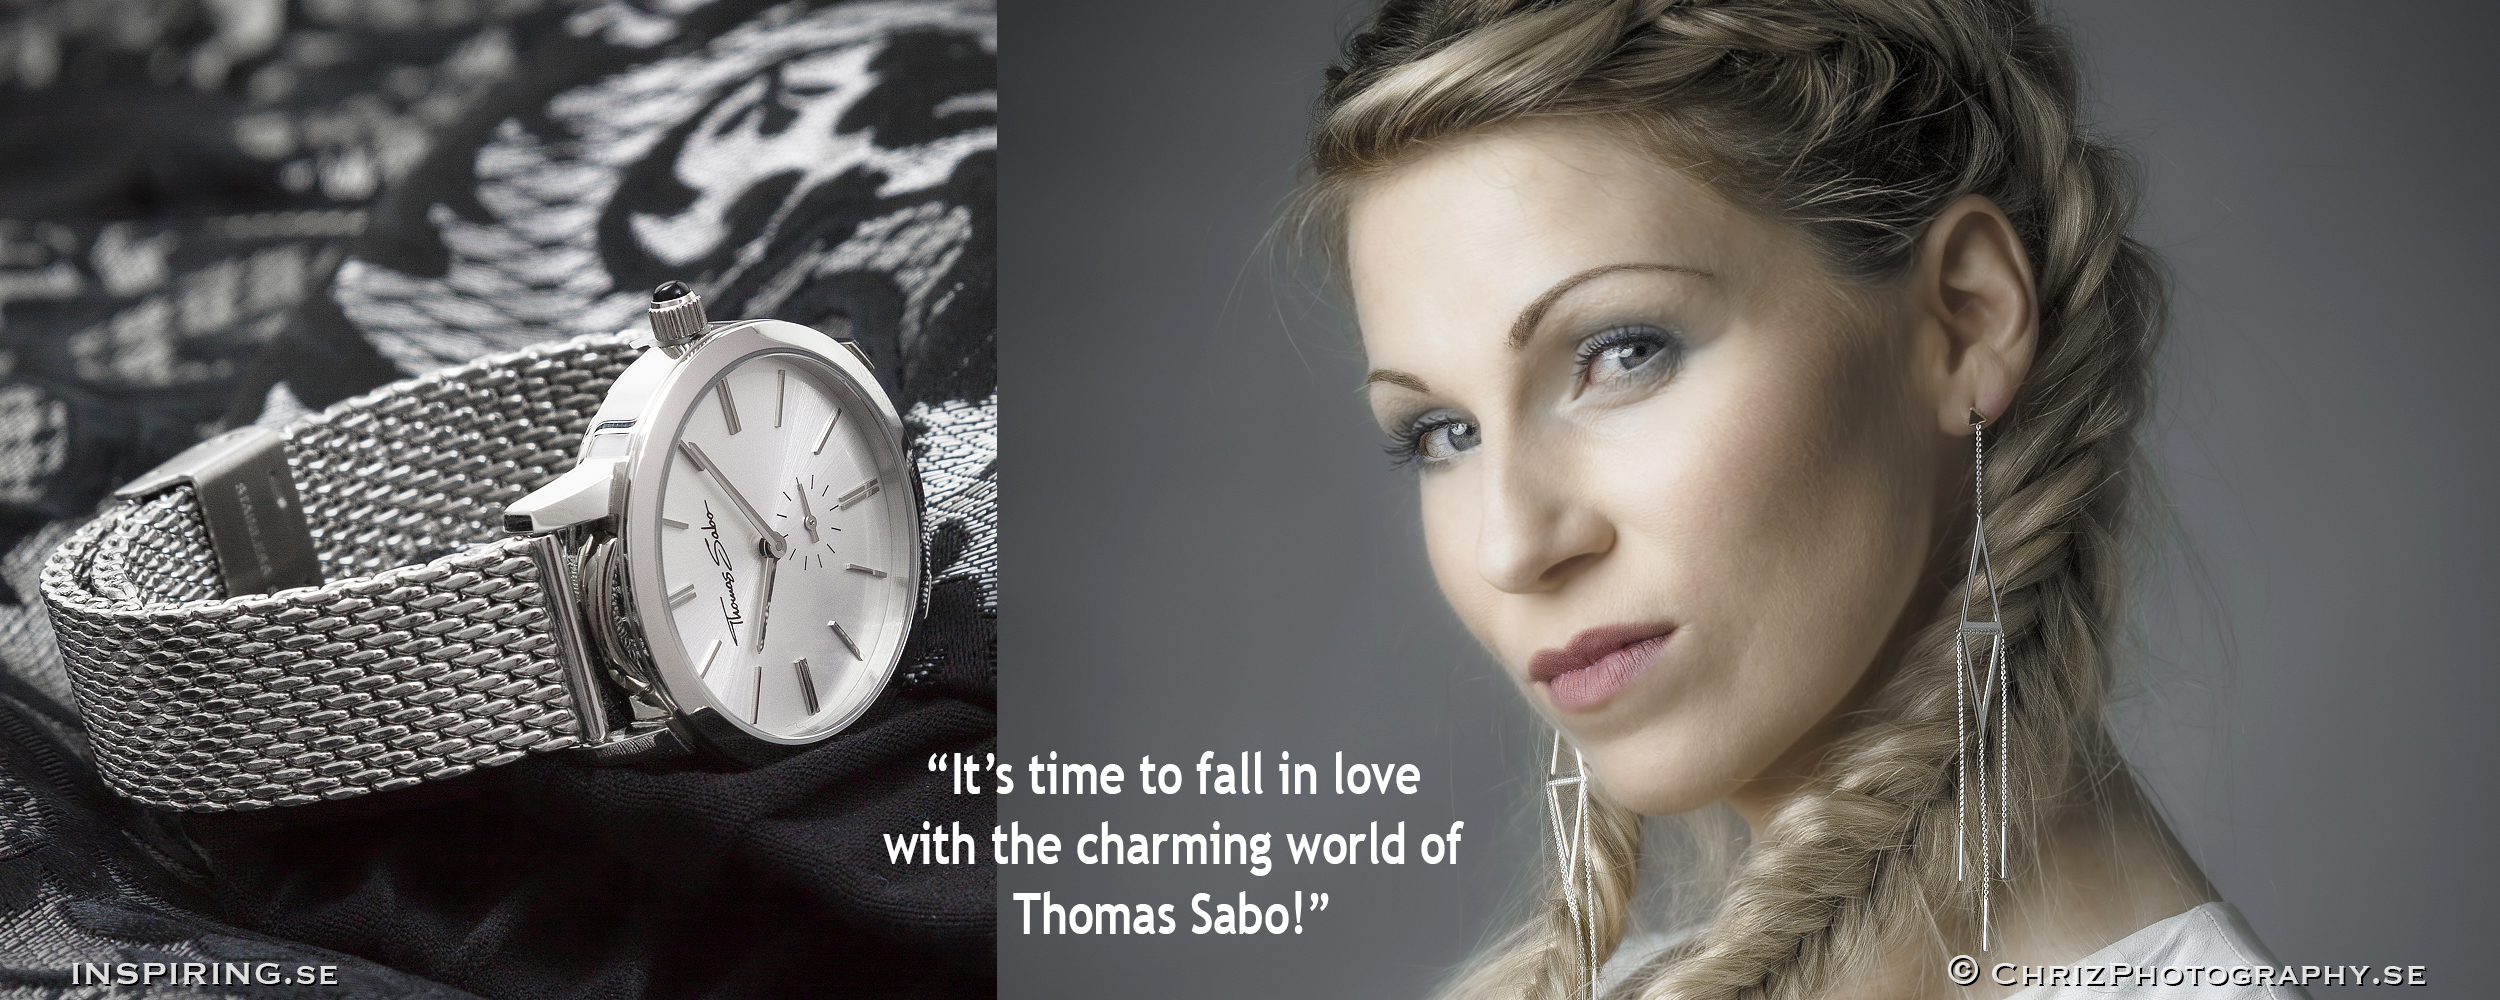 Inspiring.se_ThomasSabo_copyright_ChrizPhotography.se_Start_EN_1.jpeg